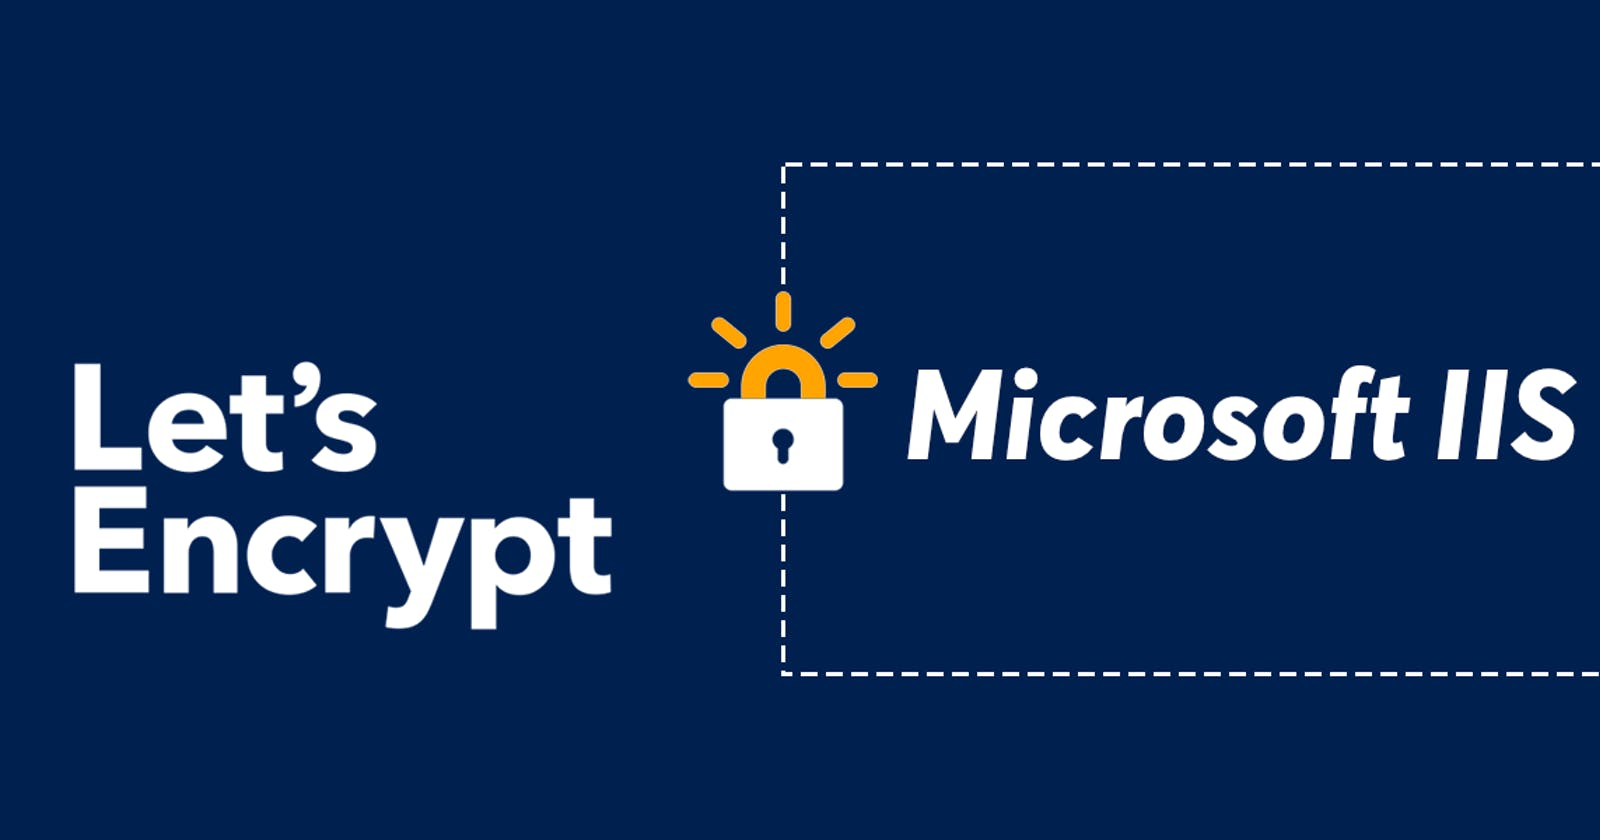 Install IIS Server on Windows and secure with SSL